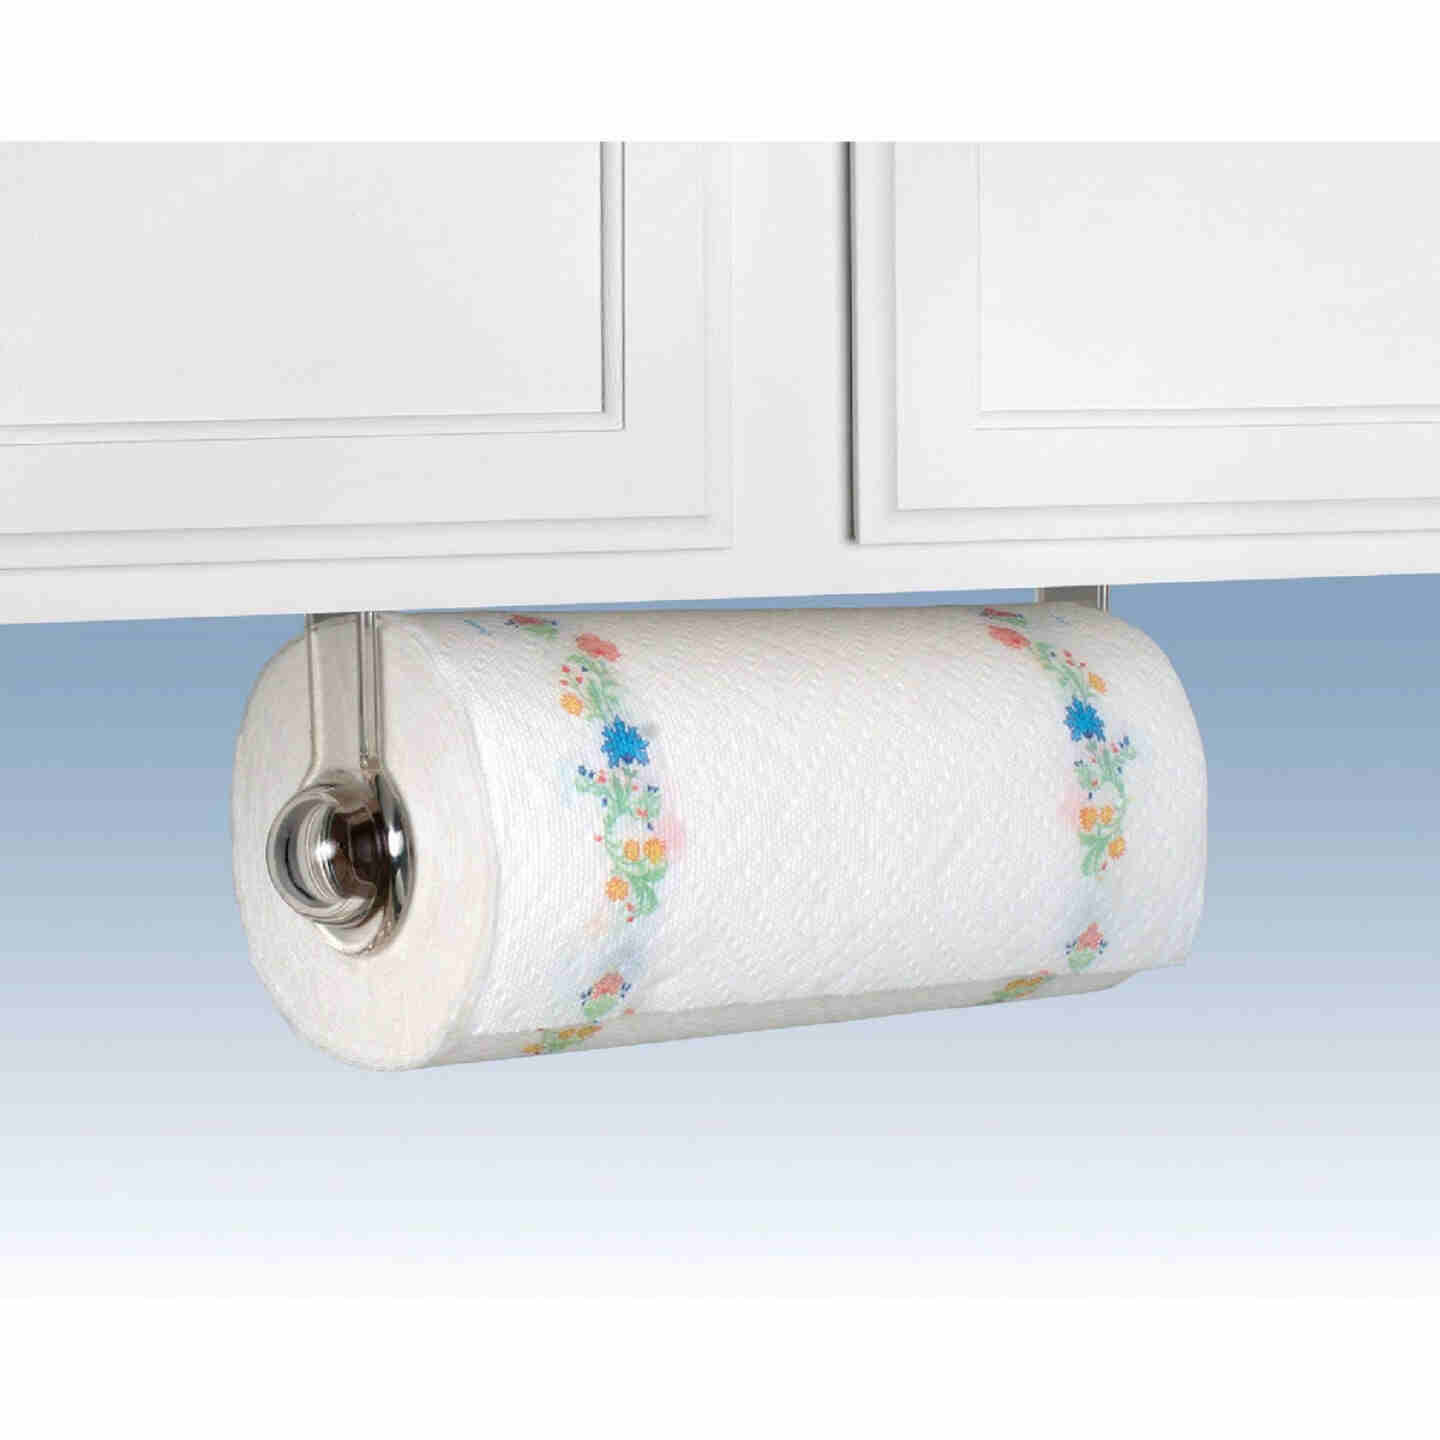 Spectrum Clear Plastic Wall or Cabinet Mount Paper Towel Holder Image 1